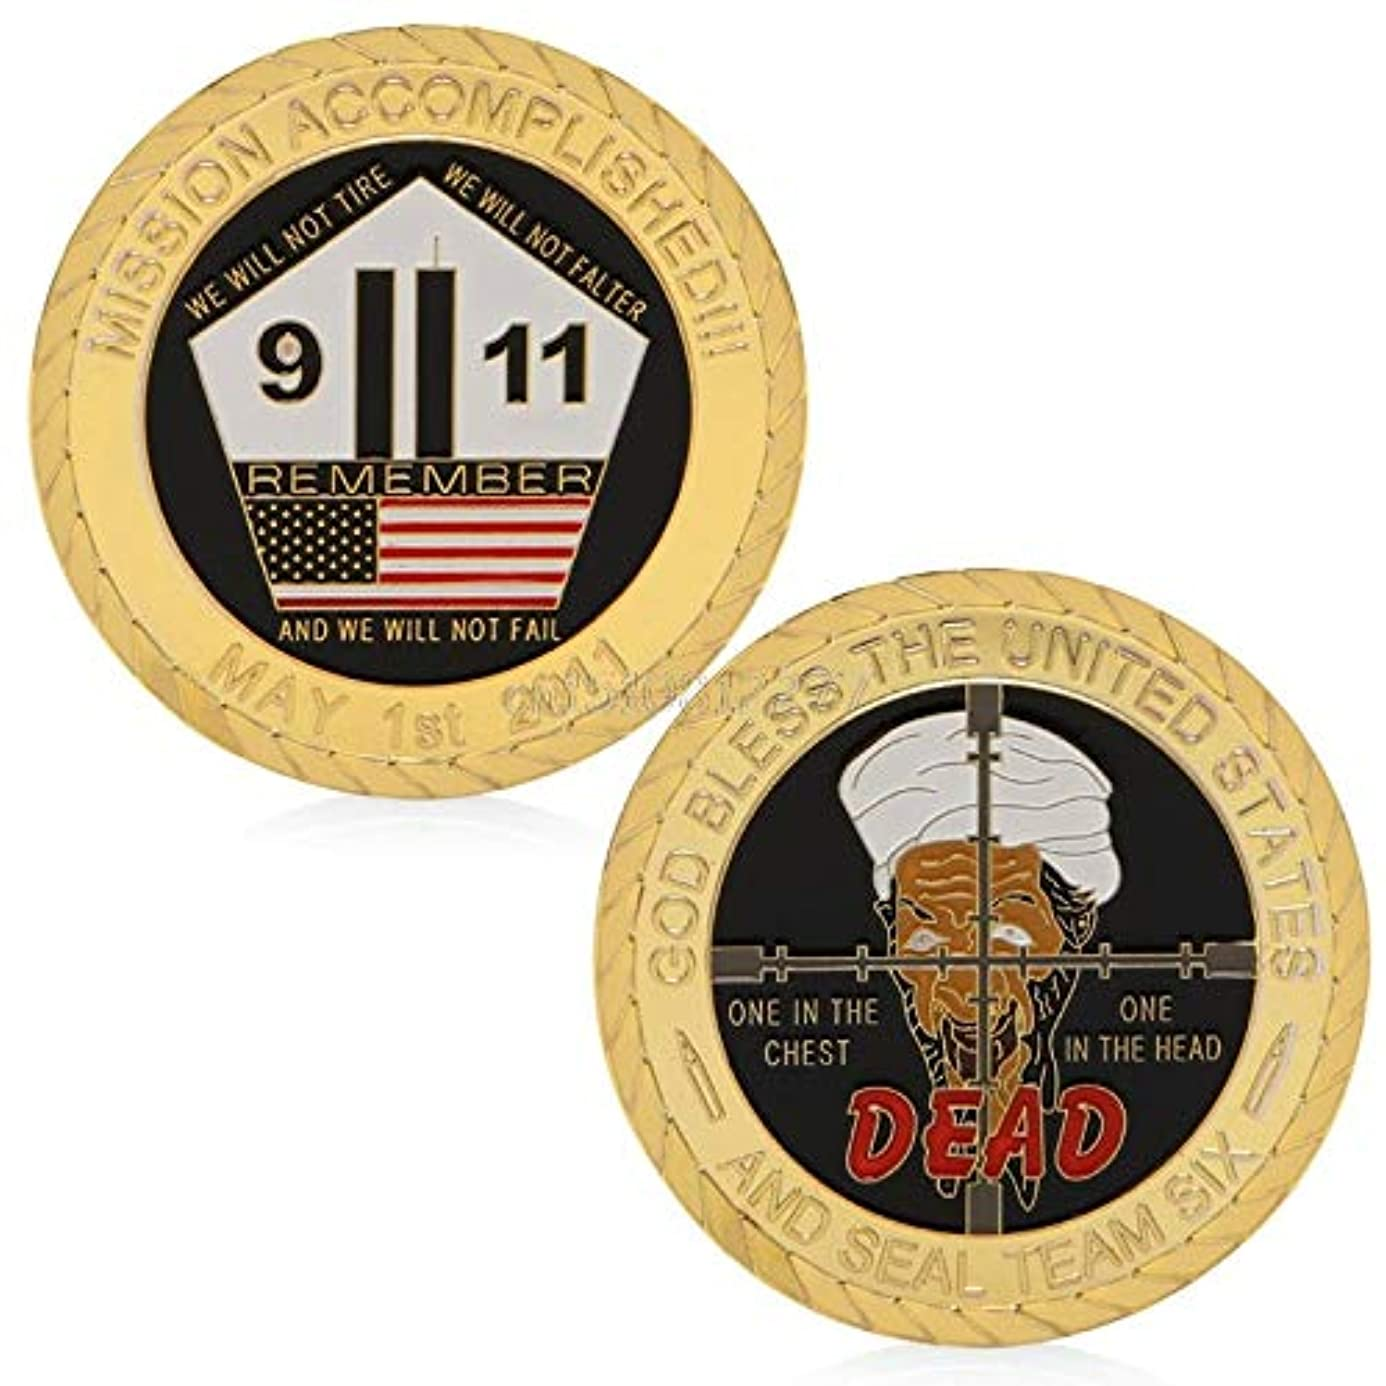 Challenge Coin - Coin God Bless The United States 911 Attack Commemorative Collectible Challenge H0vh - Thank Trump Airborne Green Display Corrections Money Patch Lapel Jeep Opener Brother Rac